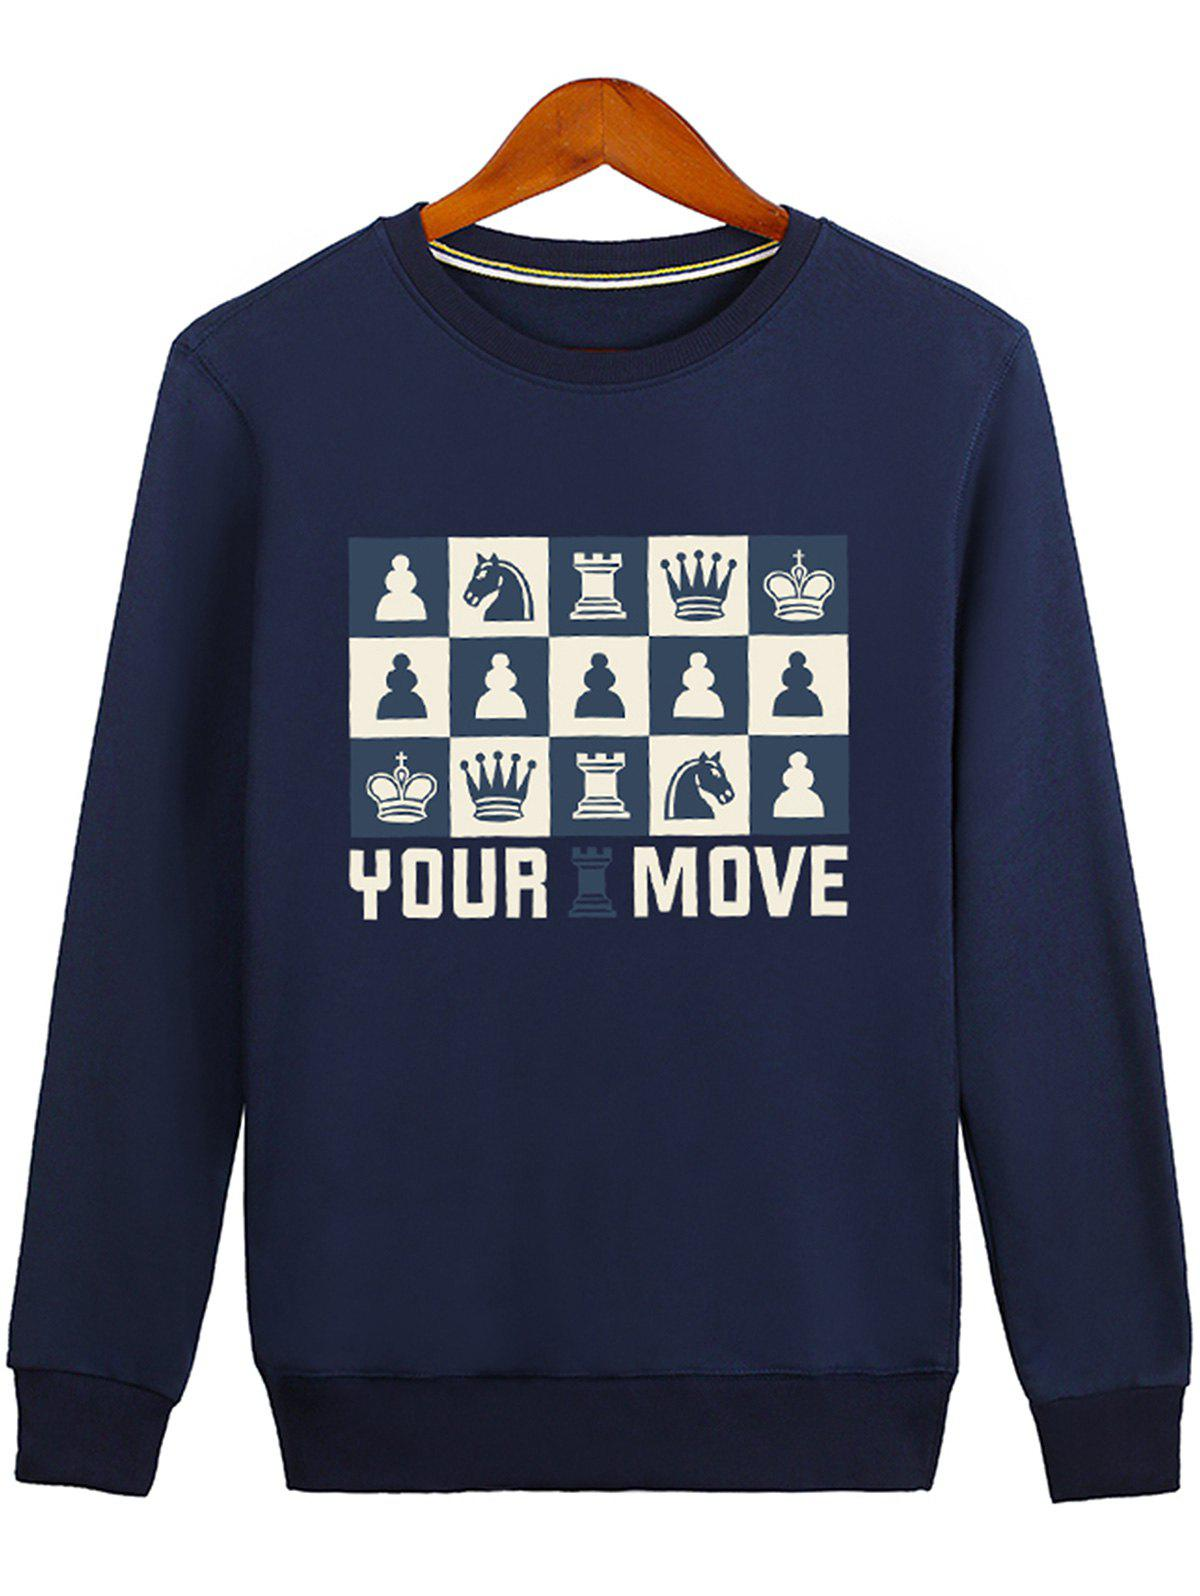 Crown Horse Printed Graphic Sweatshirt - BLUE M